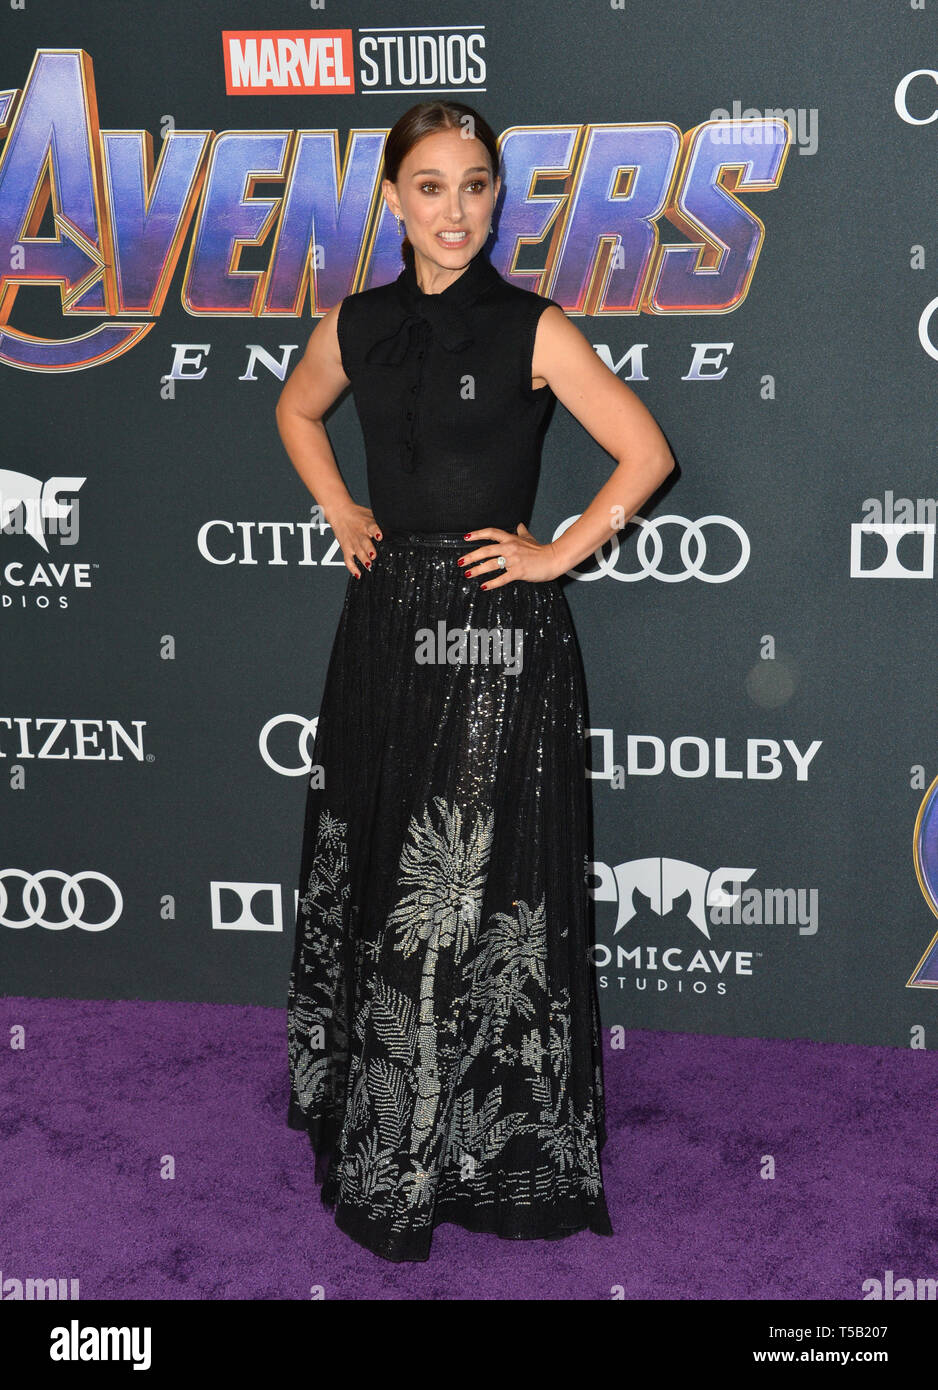 "Los Angeles, USA. 22 Apr, 2019. LOS ANGELES, USA. April 22, 2019: Natalie Portman bei der Weltpremiere von ""Marvel Studios"" Avengers: Endgame"". Credit: Paul Smith/Alamy leben Nachrichten Stockfoto"